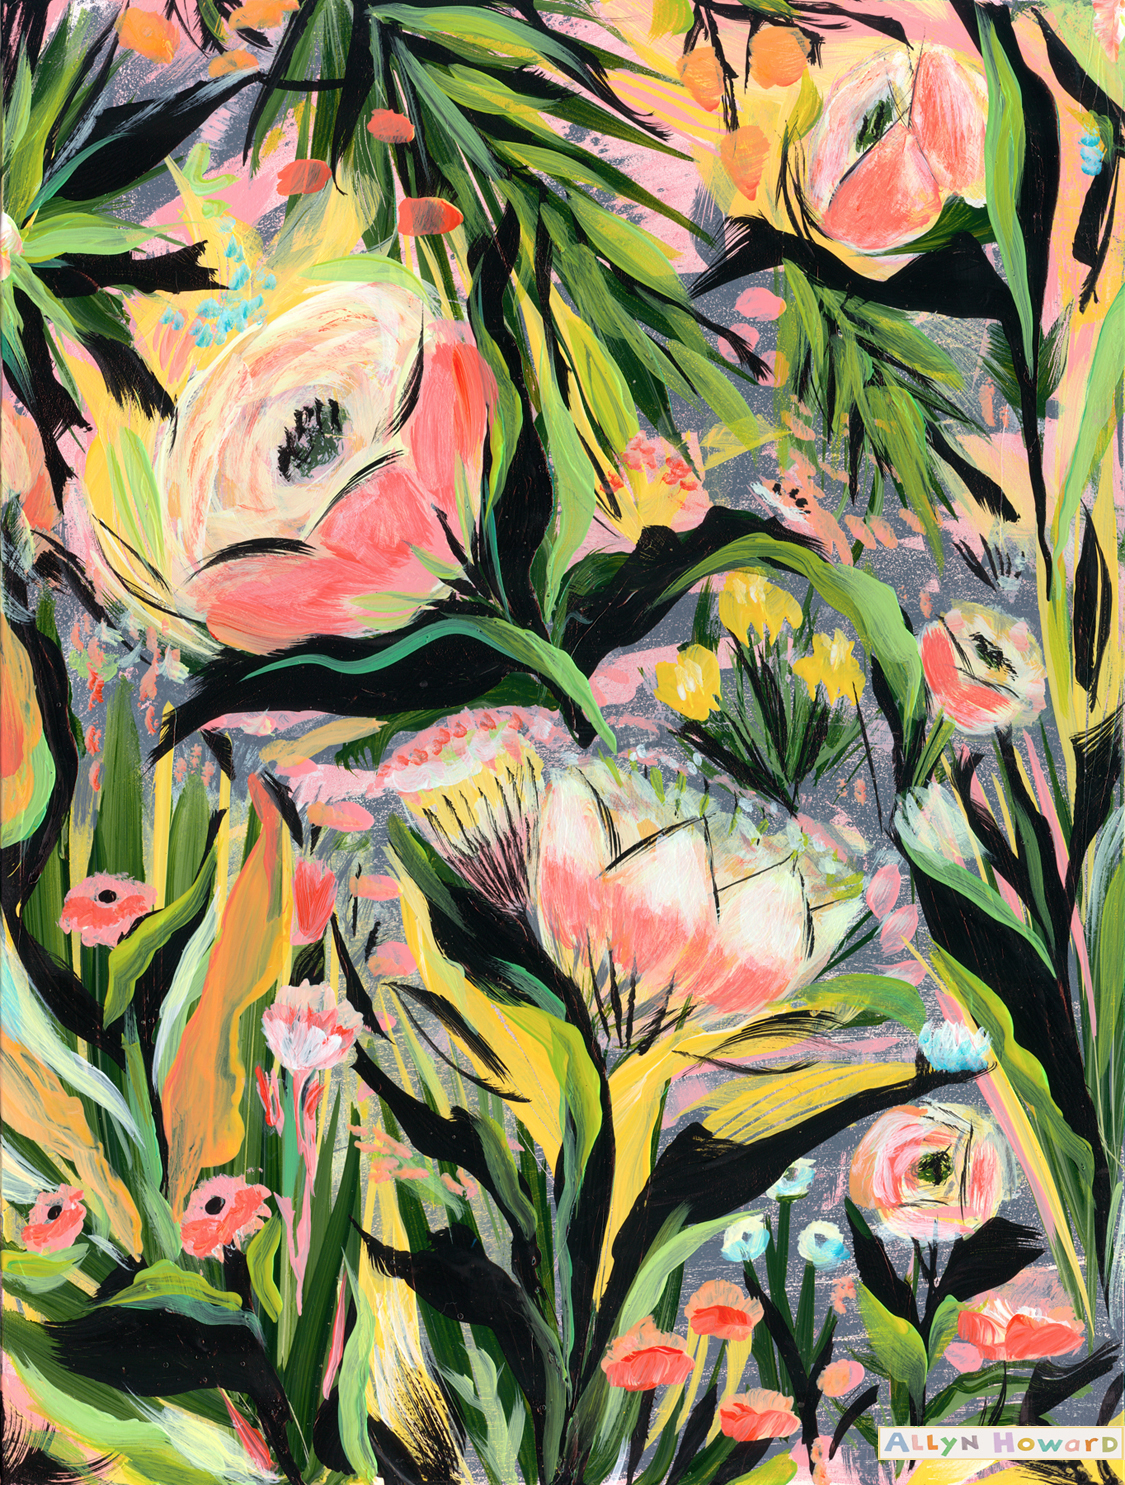 Allyn_Howard_Tropical_floral.jpg